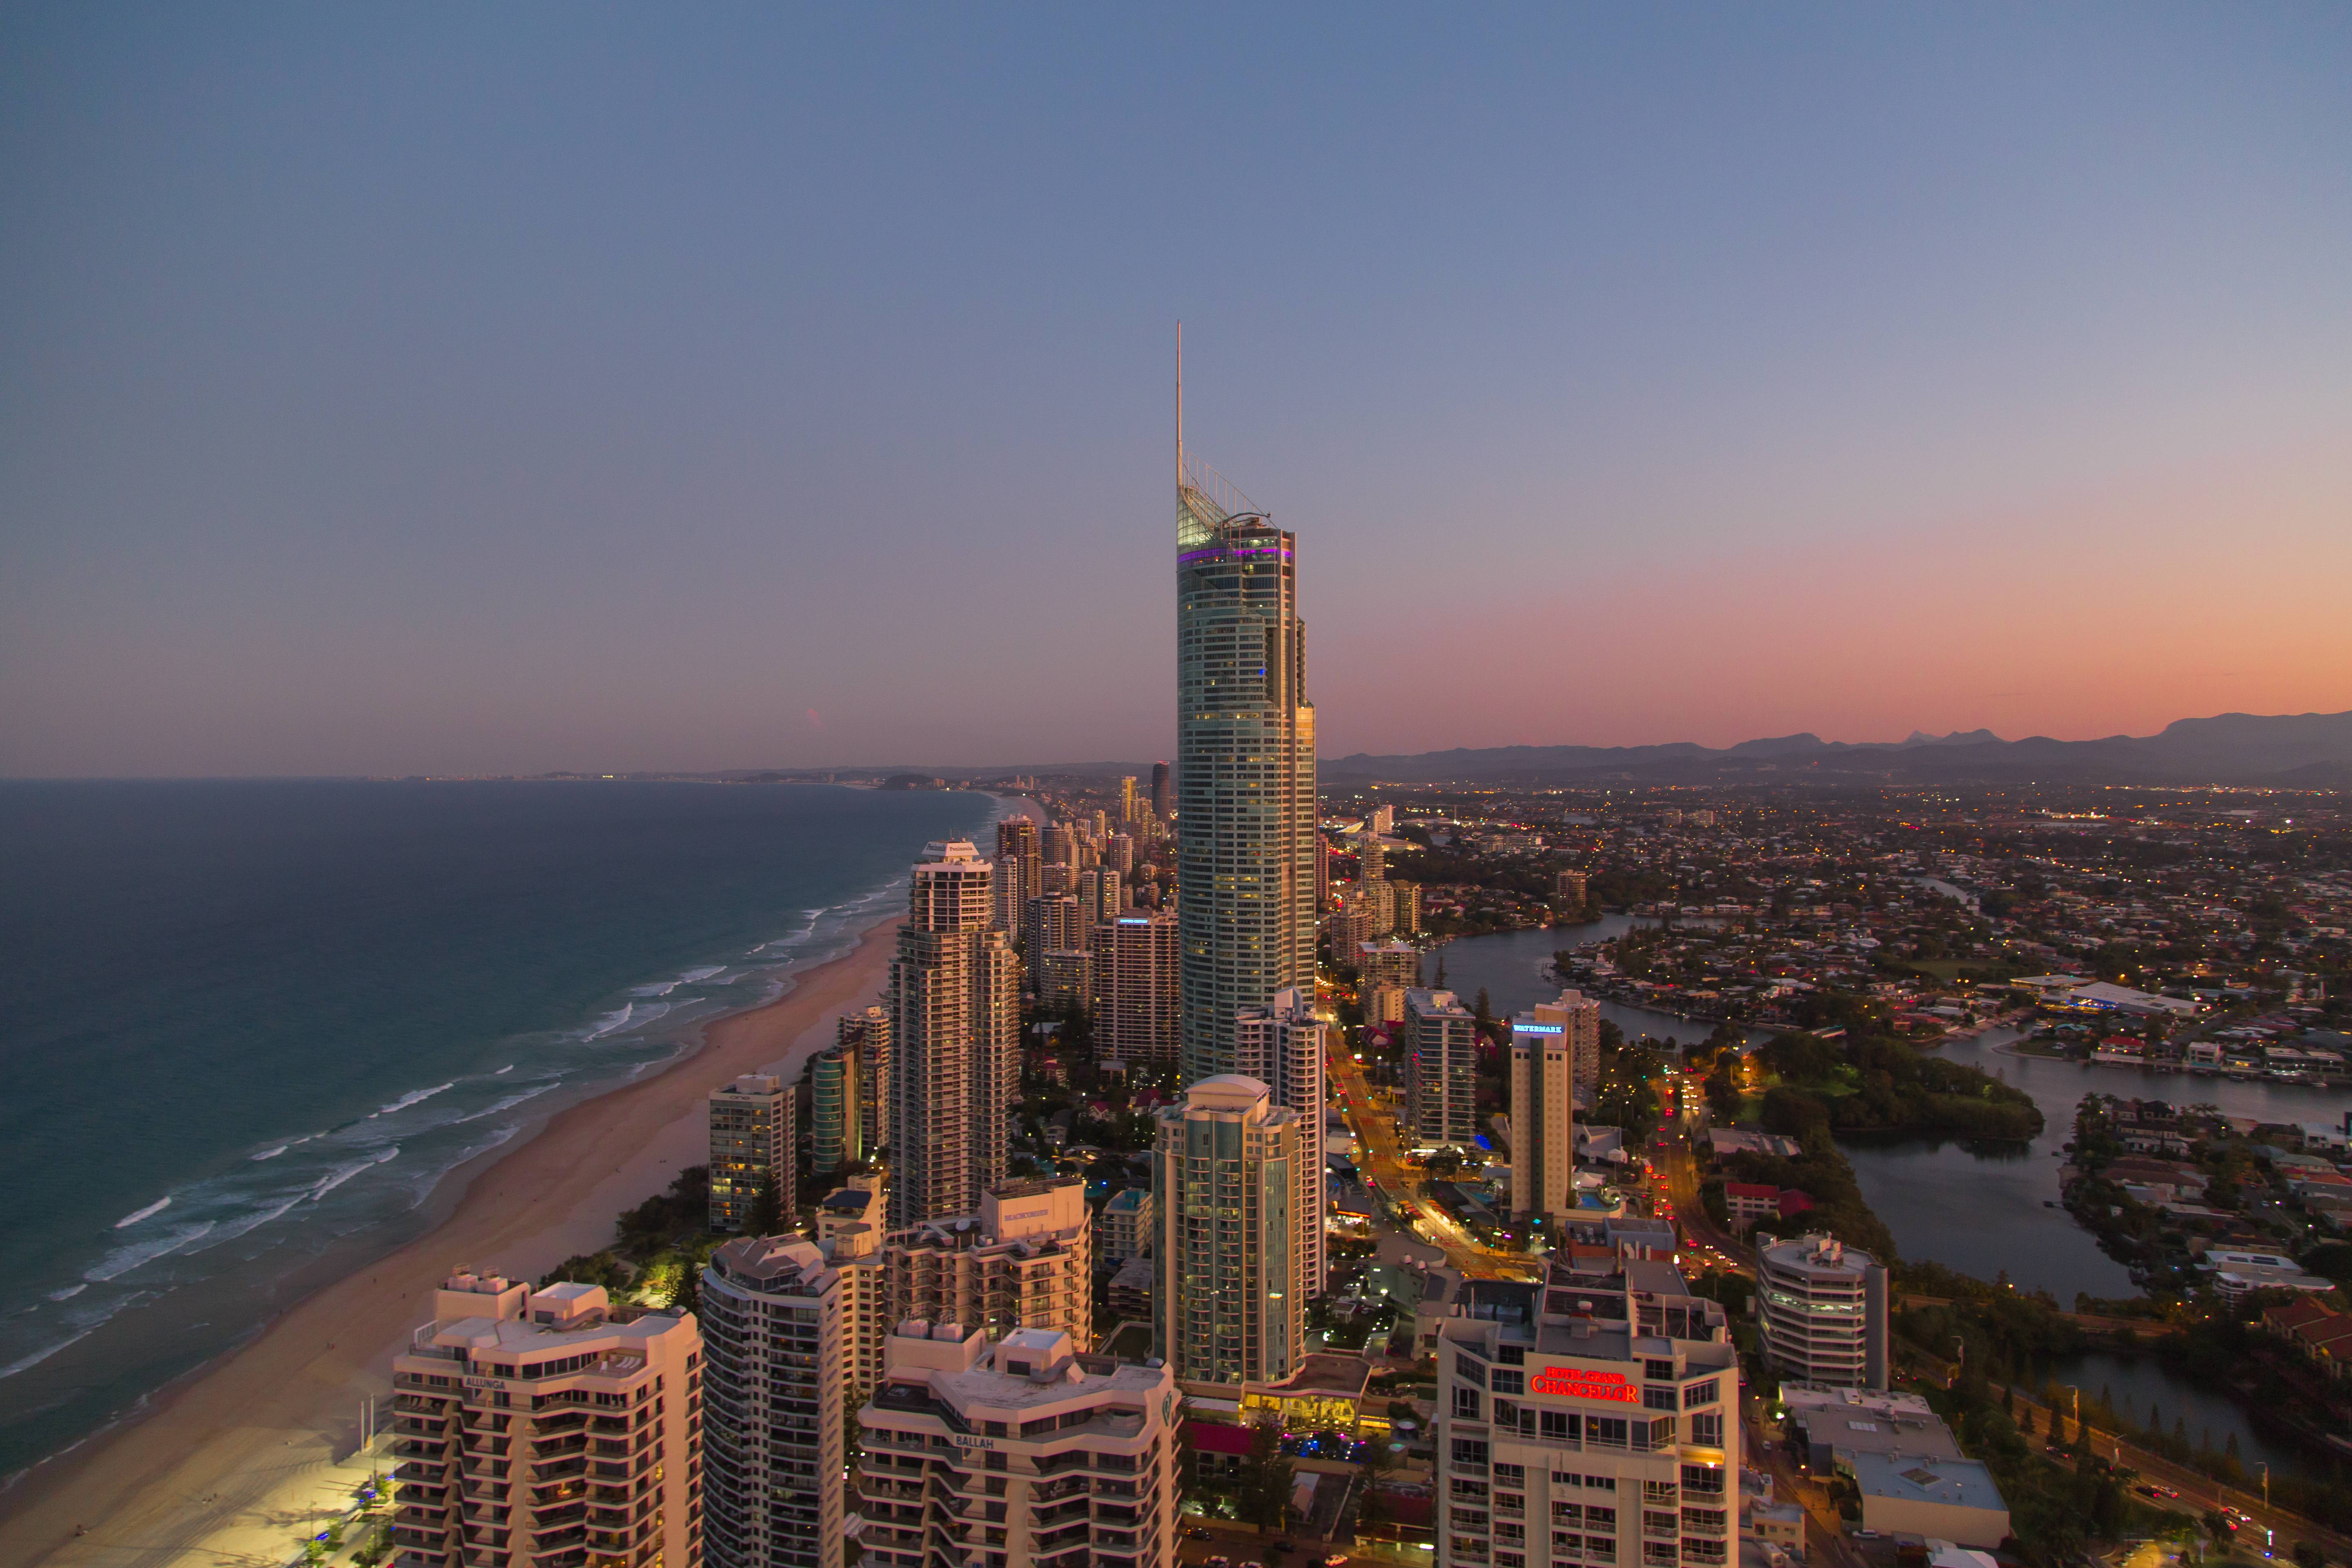 Staying on the Gold coast for a couple of days, our apartment has vertigo inducing views!